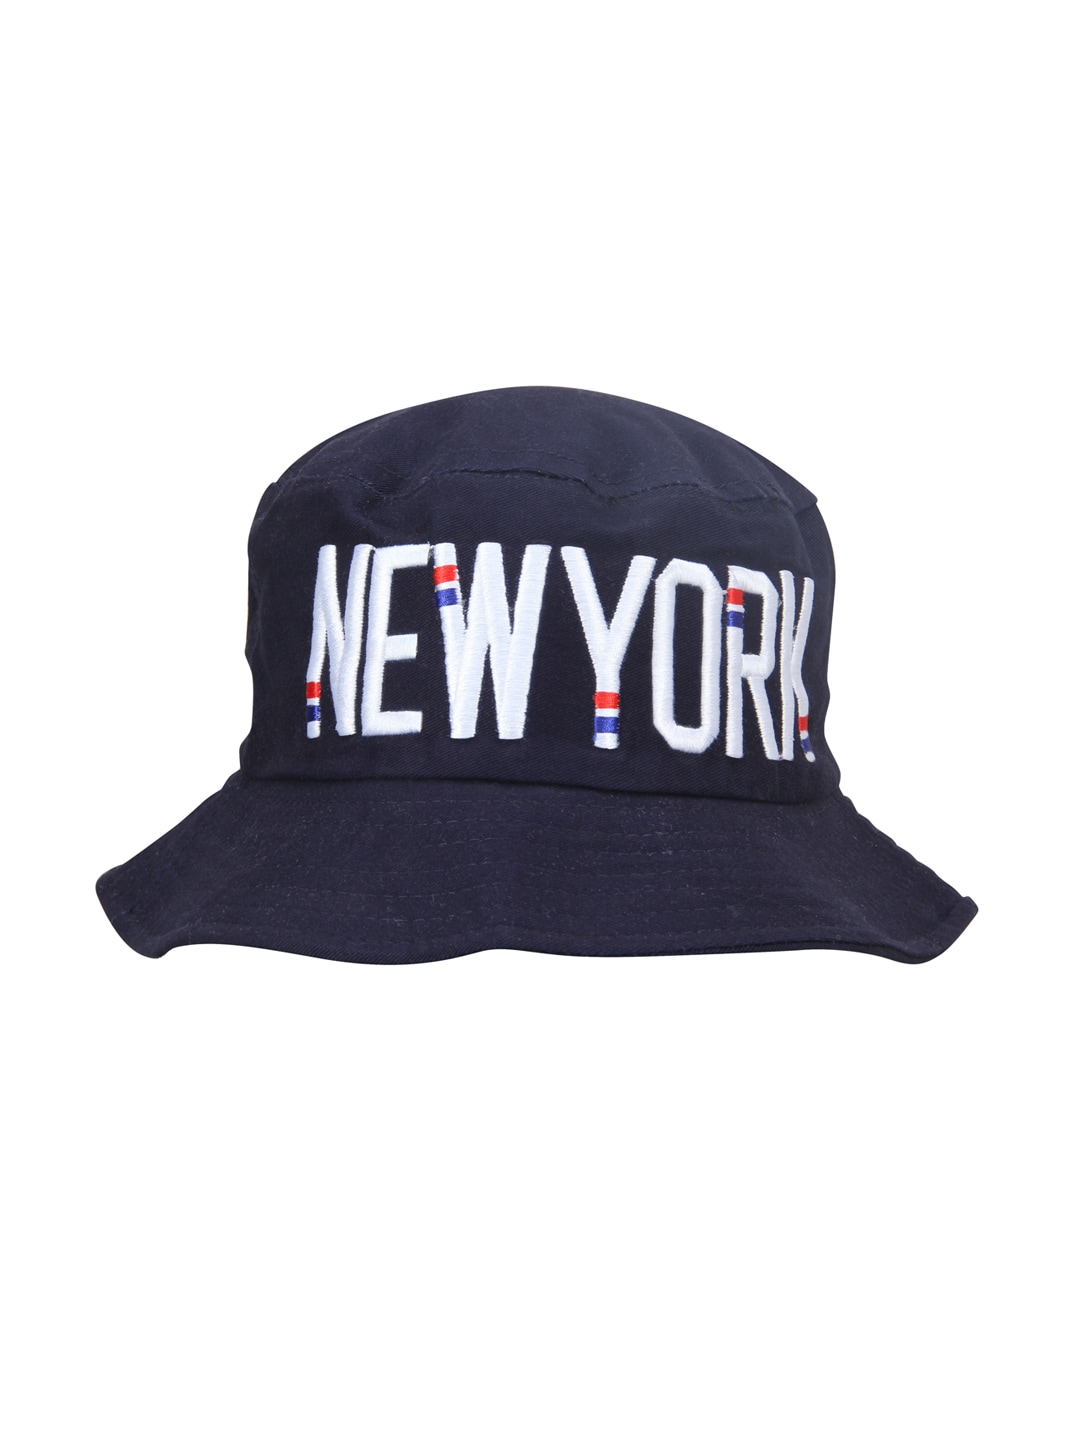 Hats - Buy Hats for Men and Women Online in India - Myntra 584b278f3b62